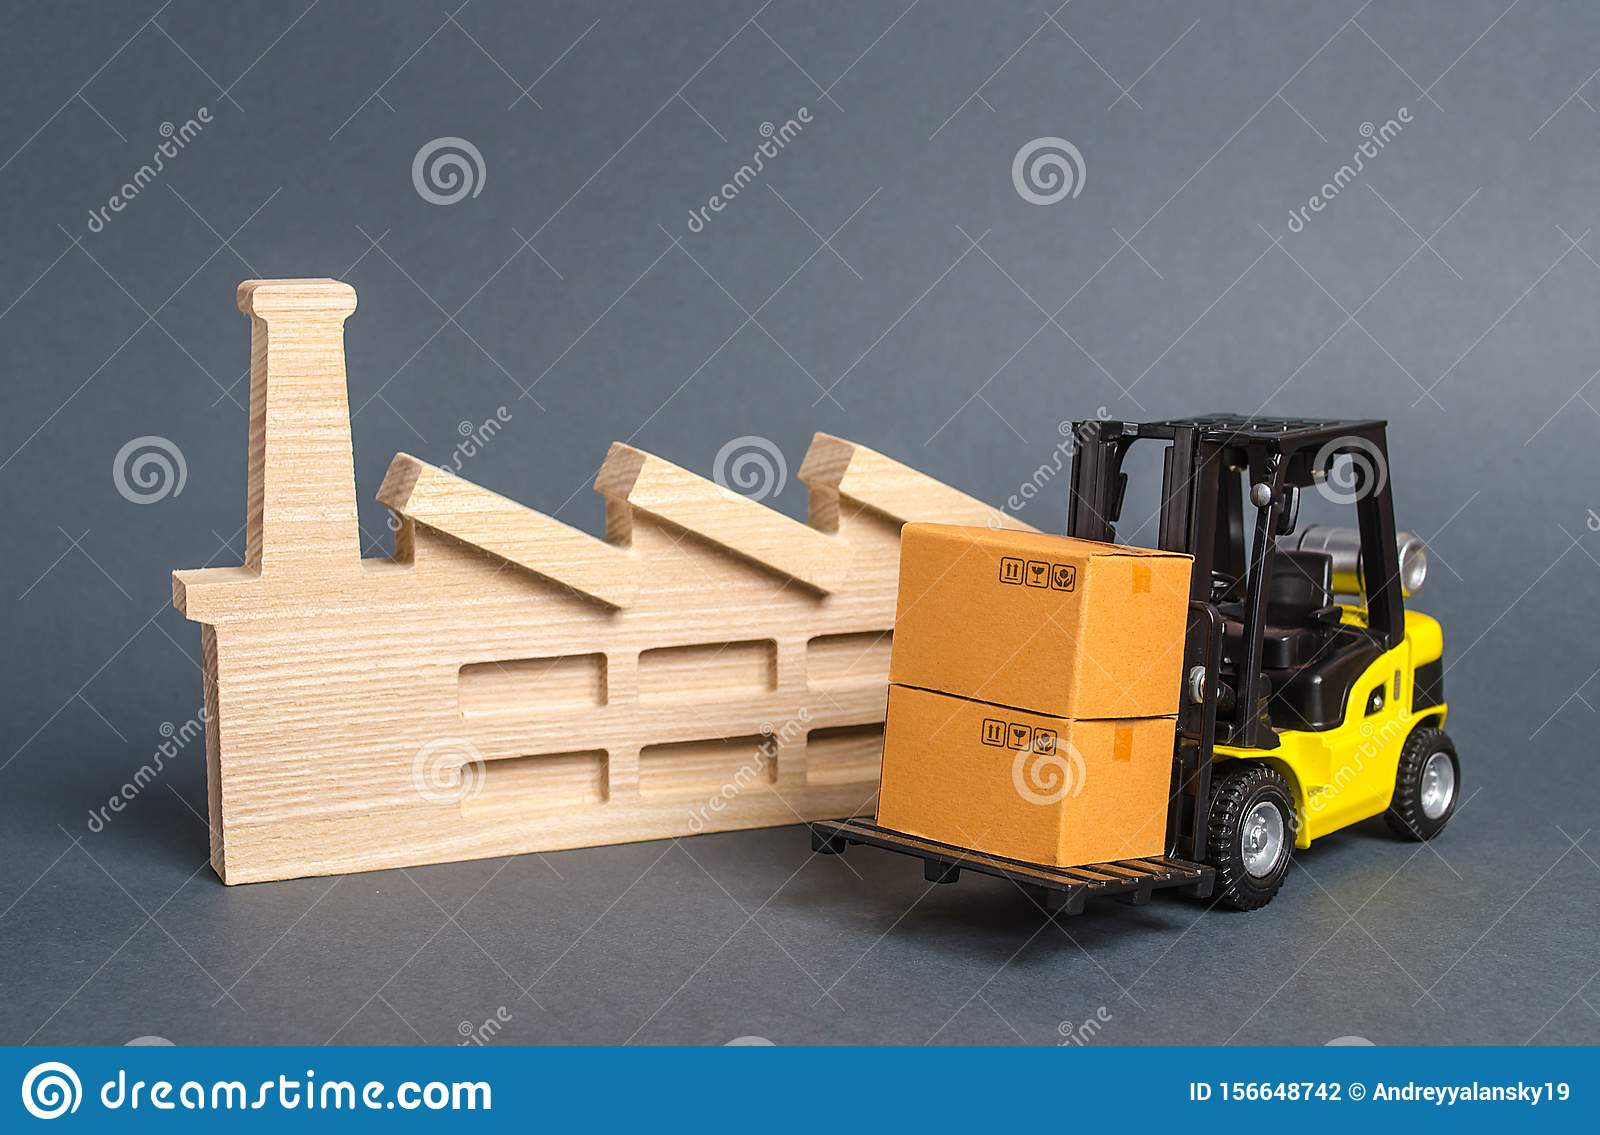 Forklift carries cardboard boxes and building a factory or plant. Services transportation of goods products, logistics